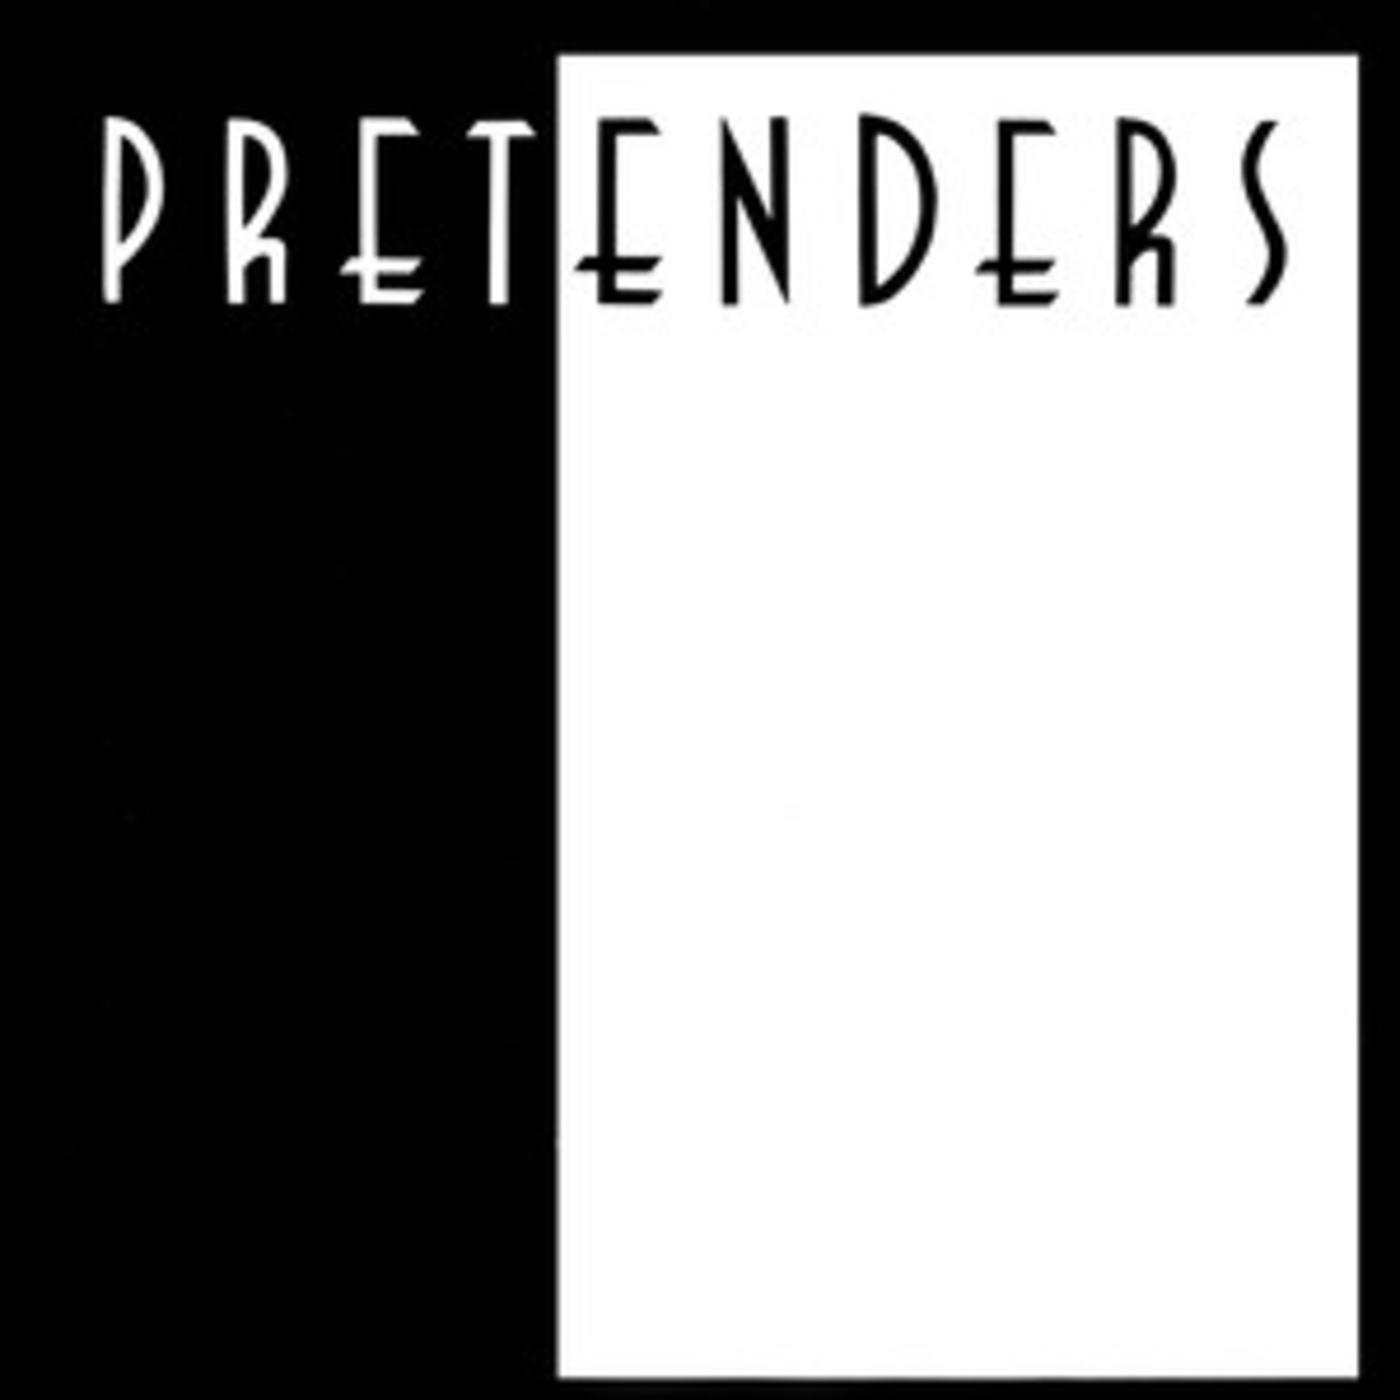 Pretenders - Official Playlist - Brass In Pocket, Don't Get Me Wrong, Back on the Chain Gang & more